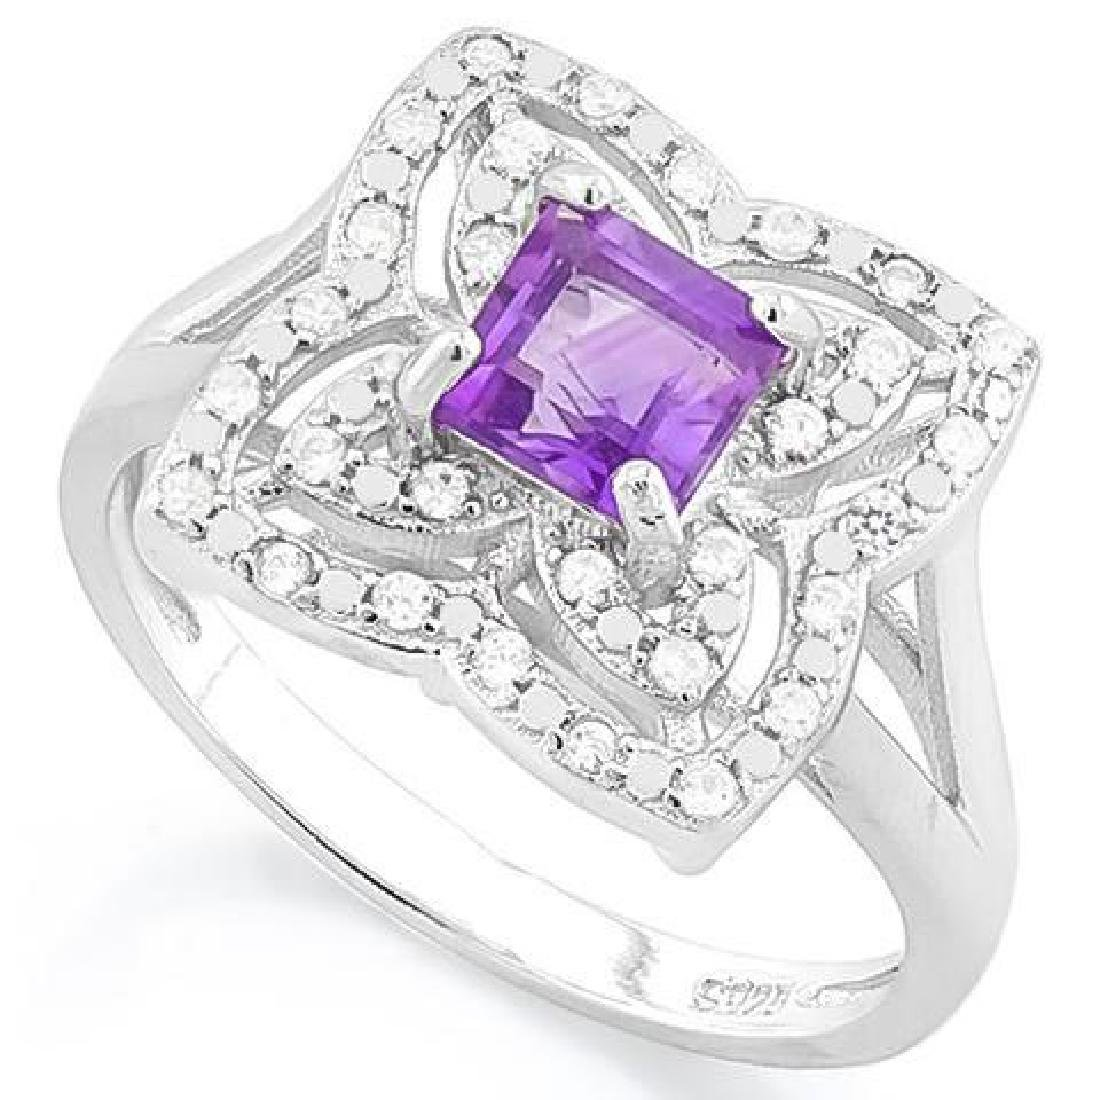 3/5 CARAT AMETHYST  (32 PCS) FLAWLESS CREATED DIAMOND 9